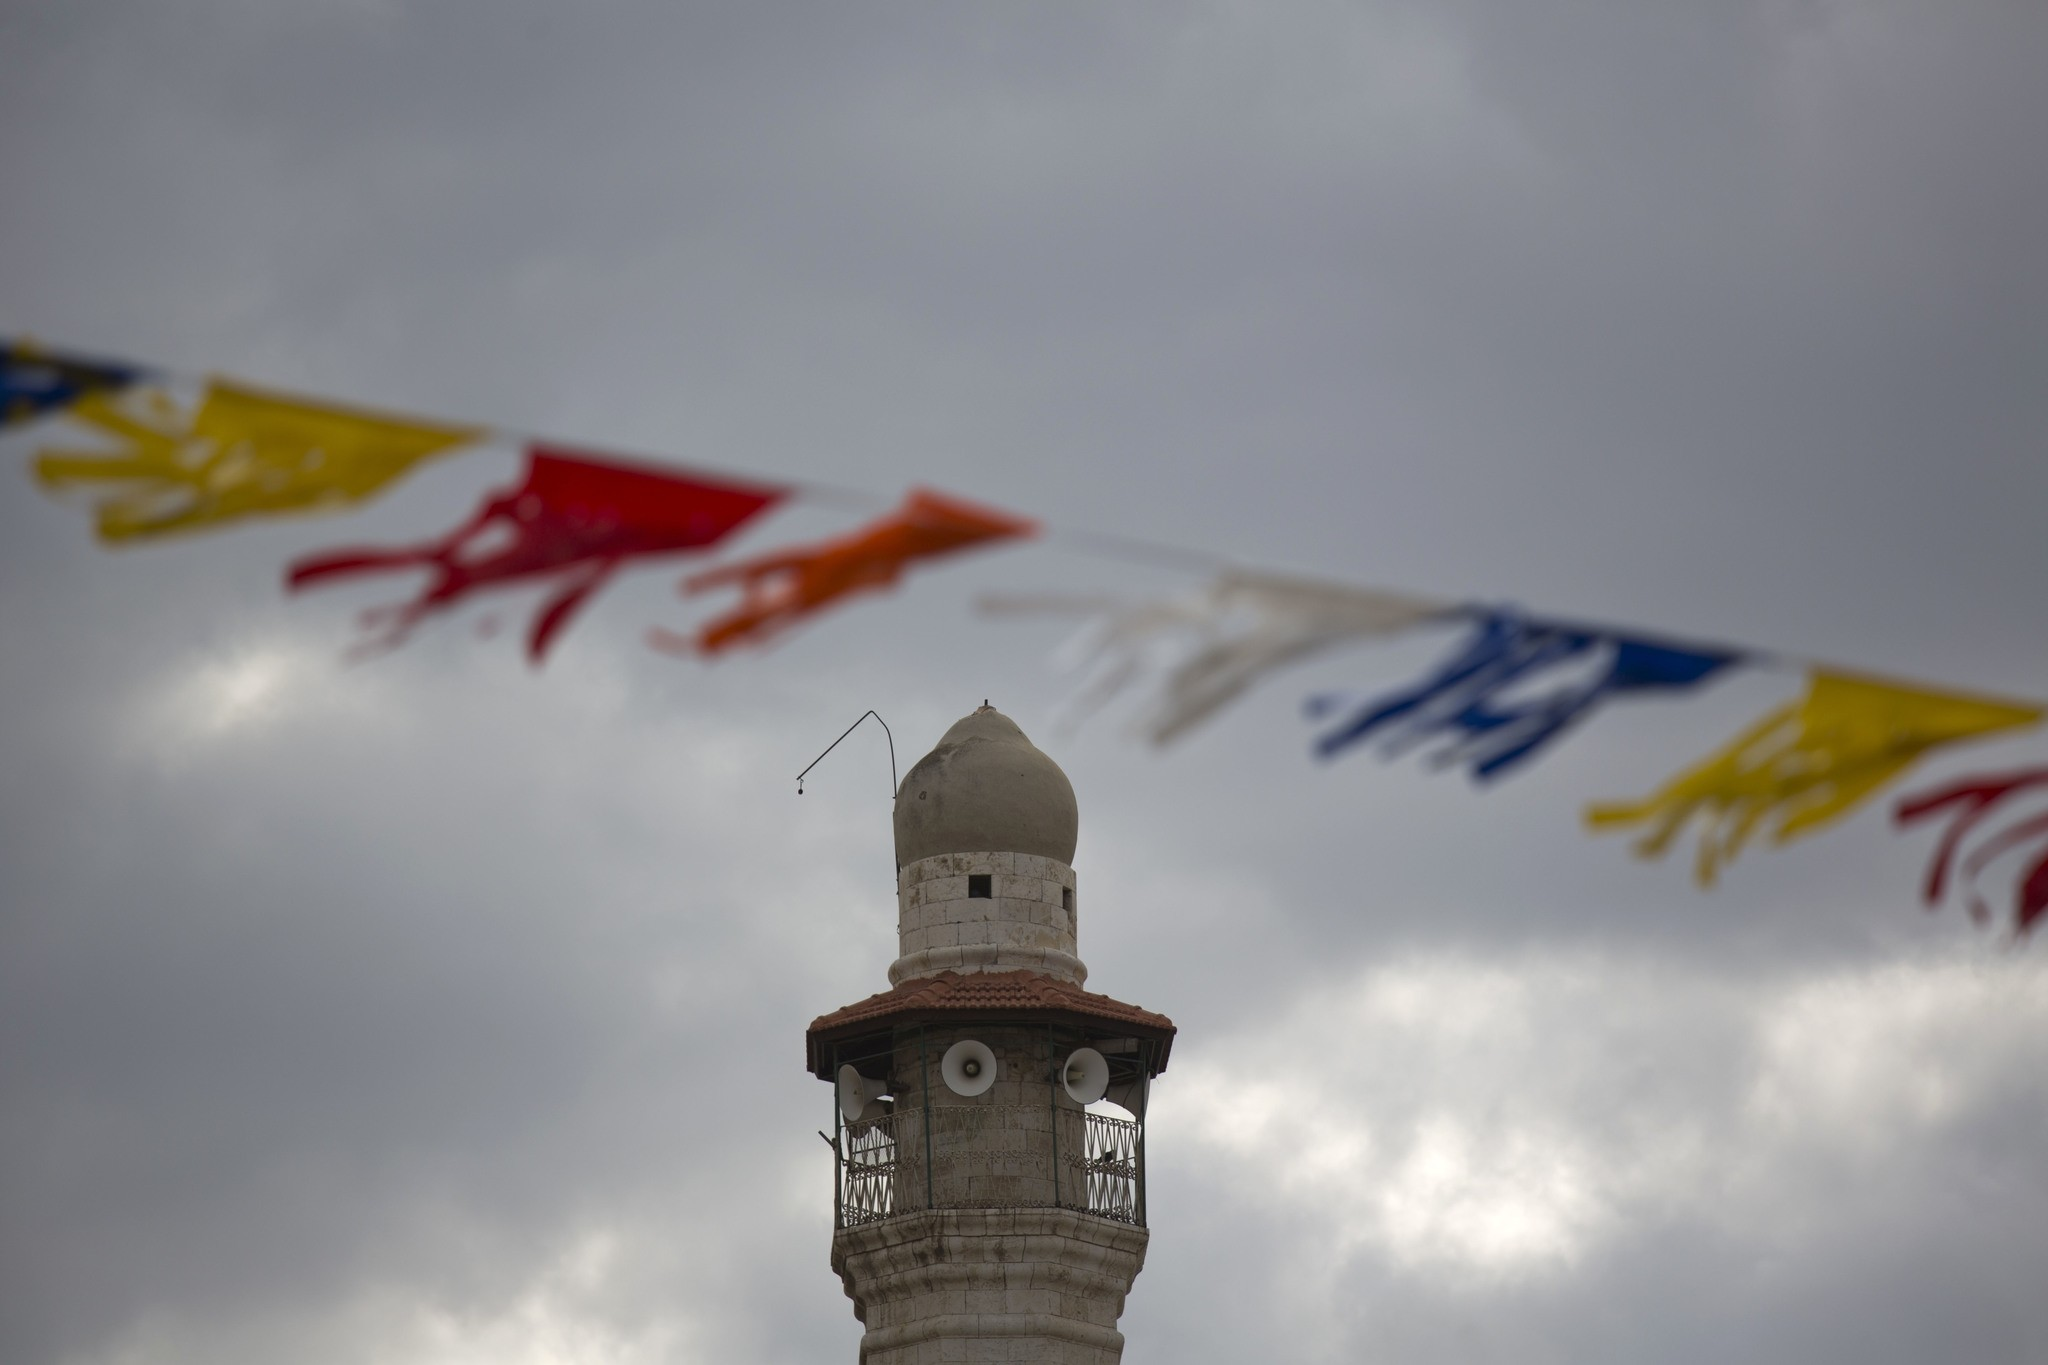 The minaret of a mosque is seen in Lod, a mixed Jewish Muslim and Christian city in central Israel, Wednesday, Nov. 16, 2016. (AP Photo)